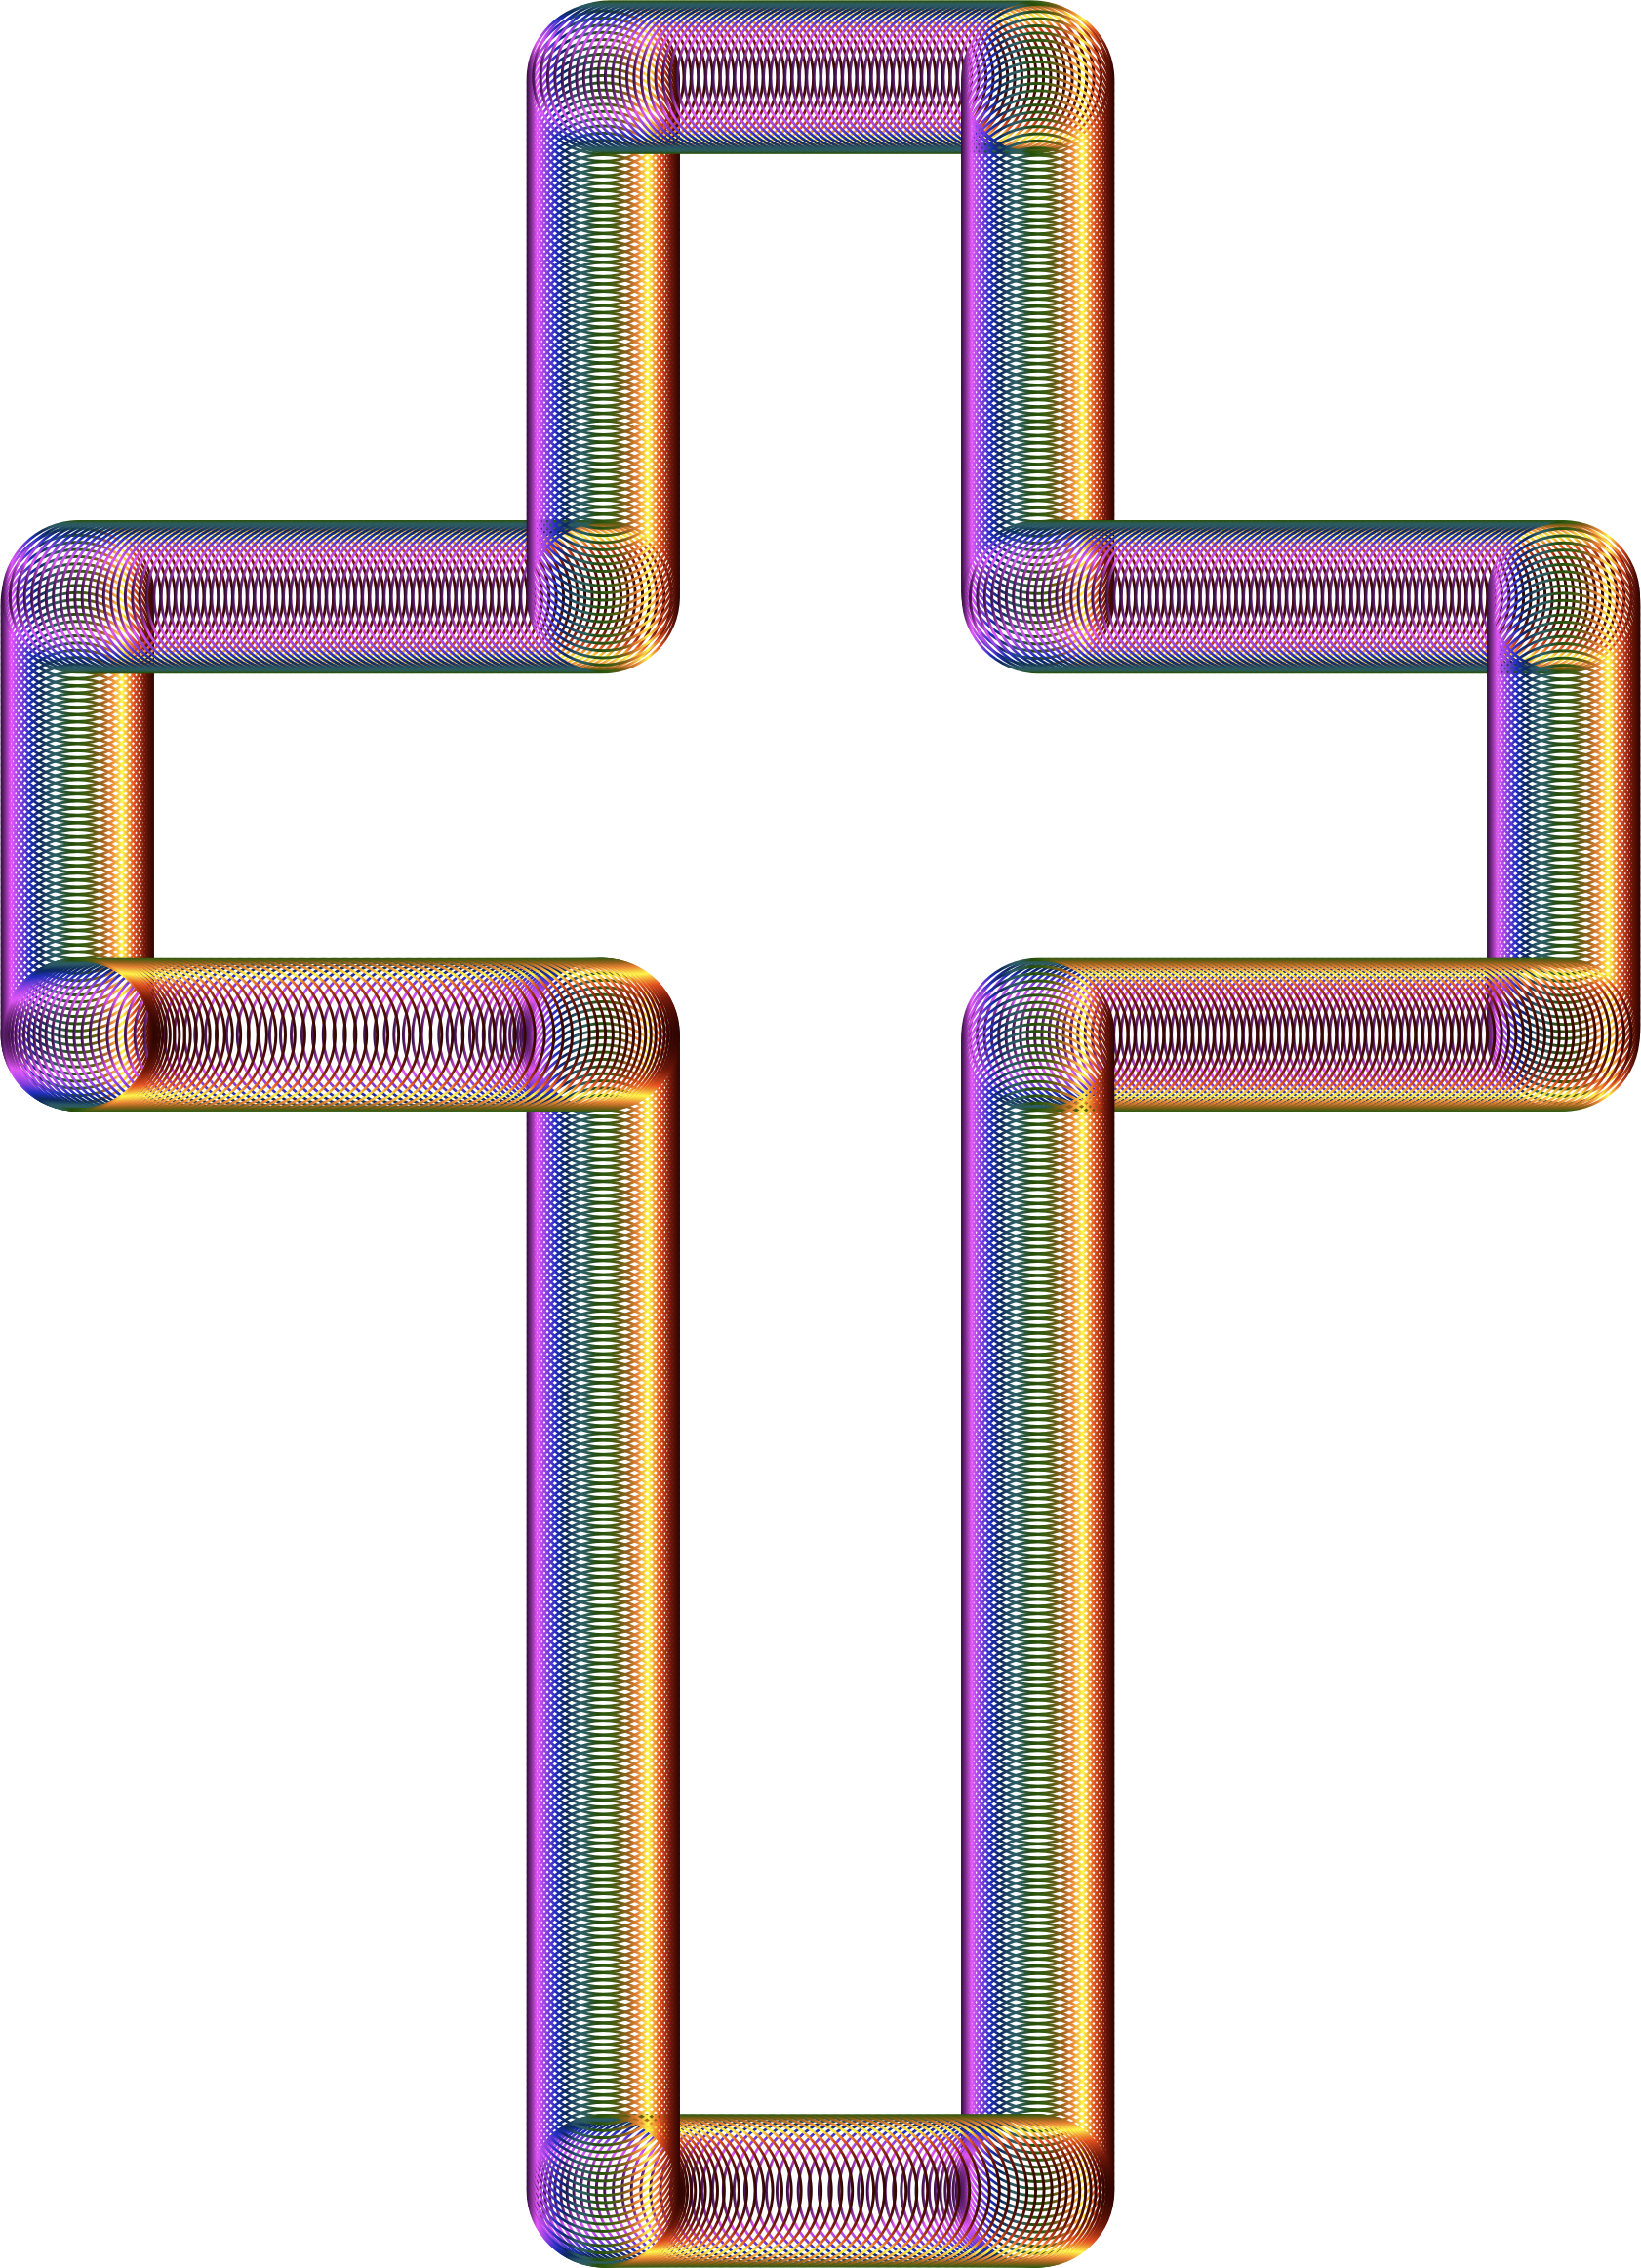 Cross Tubes Chromatic No Background by GDJ